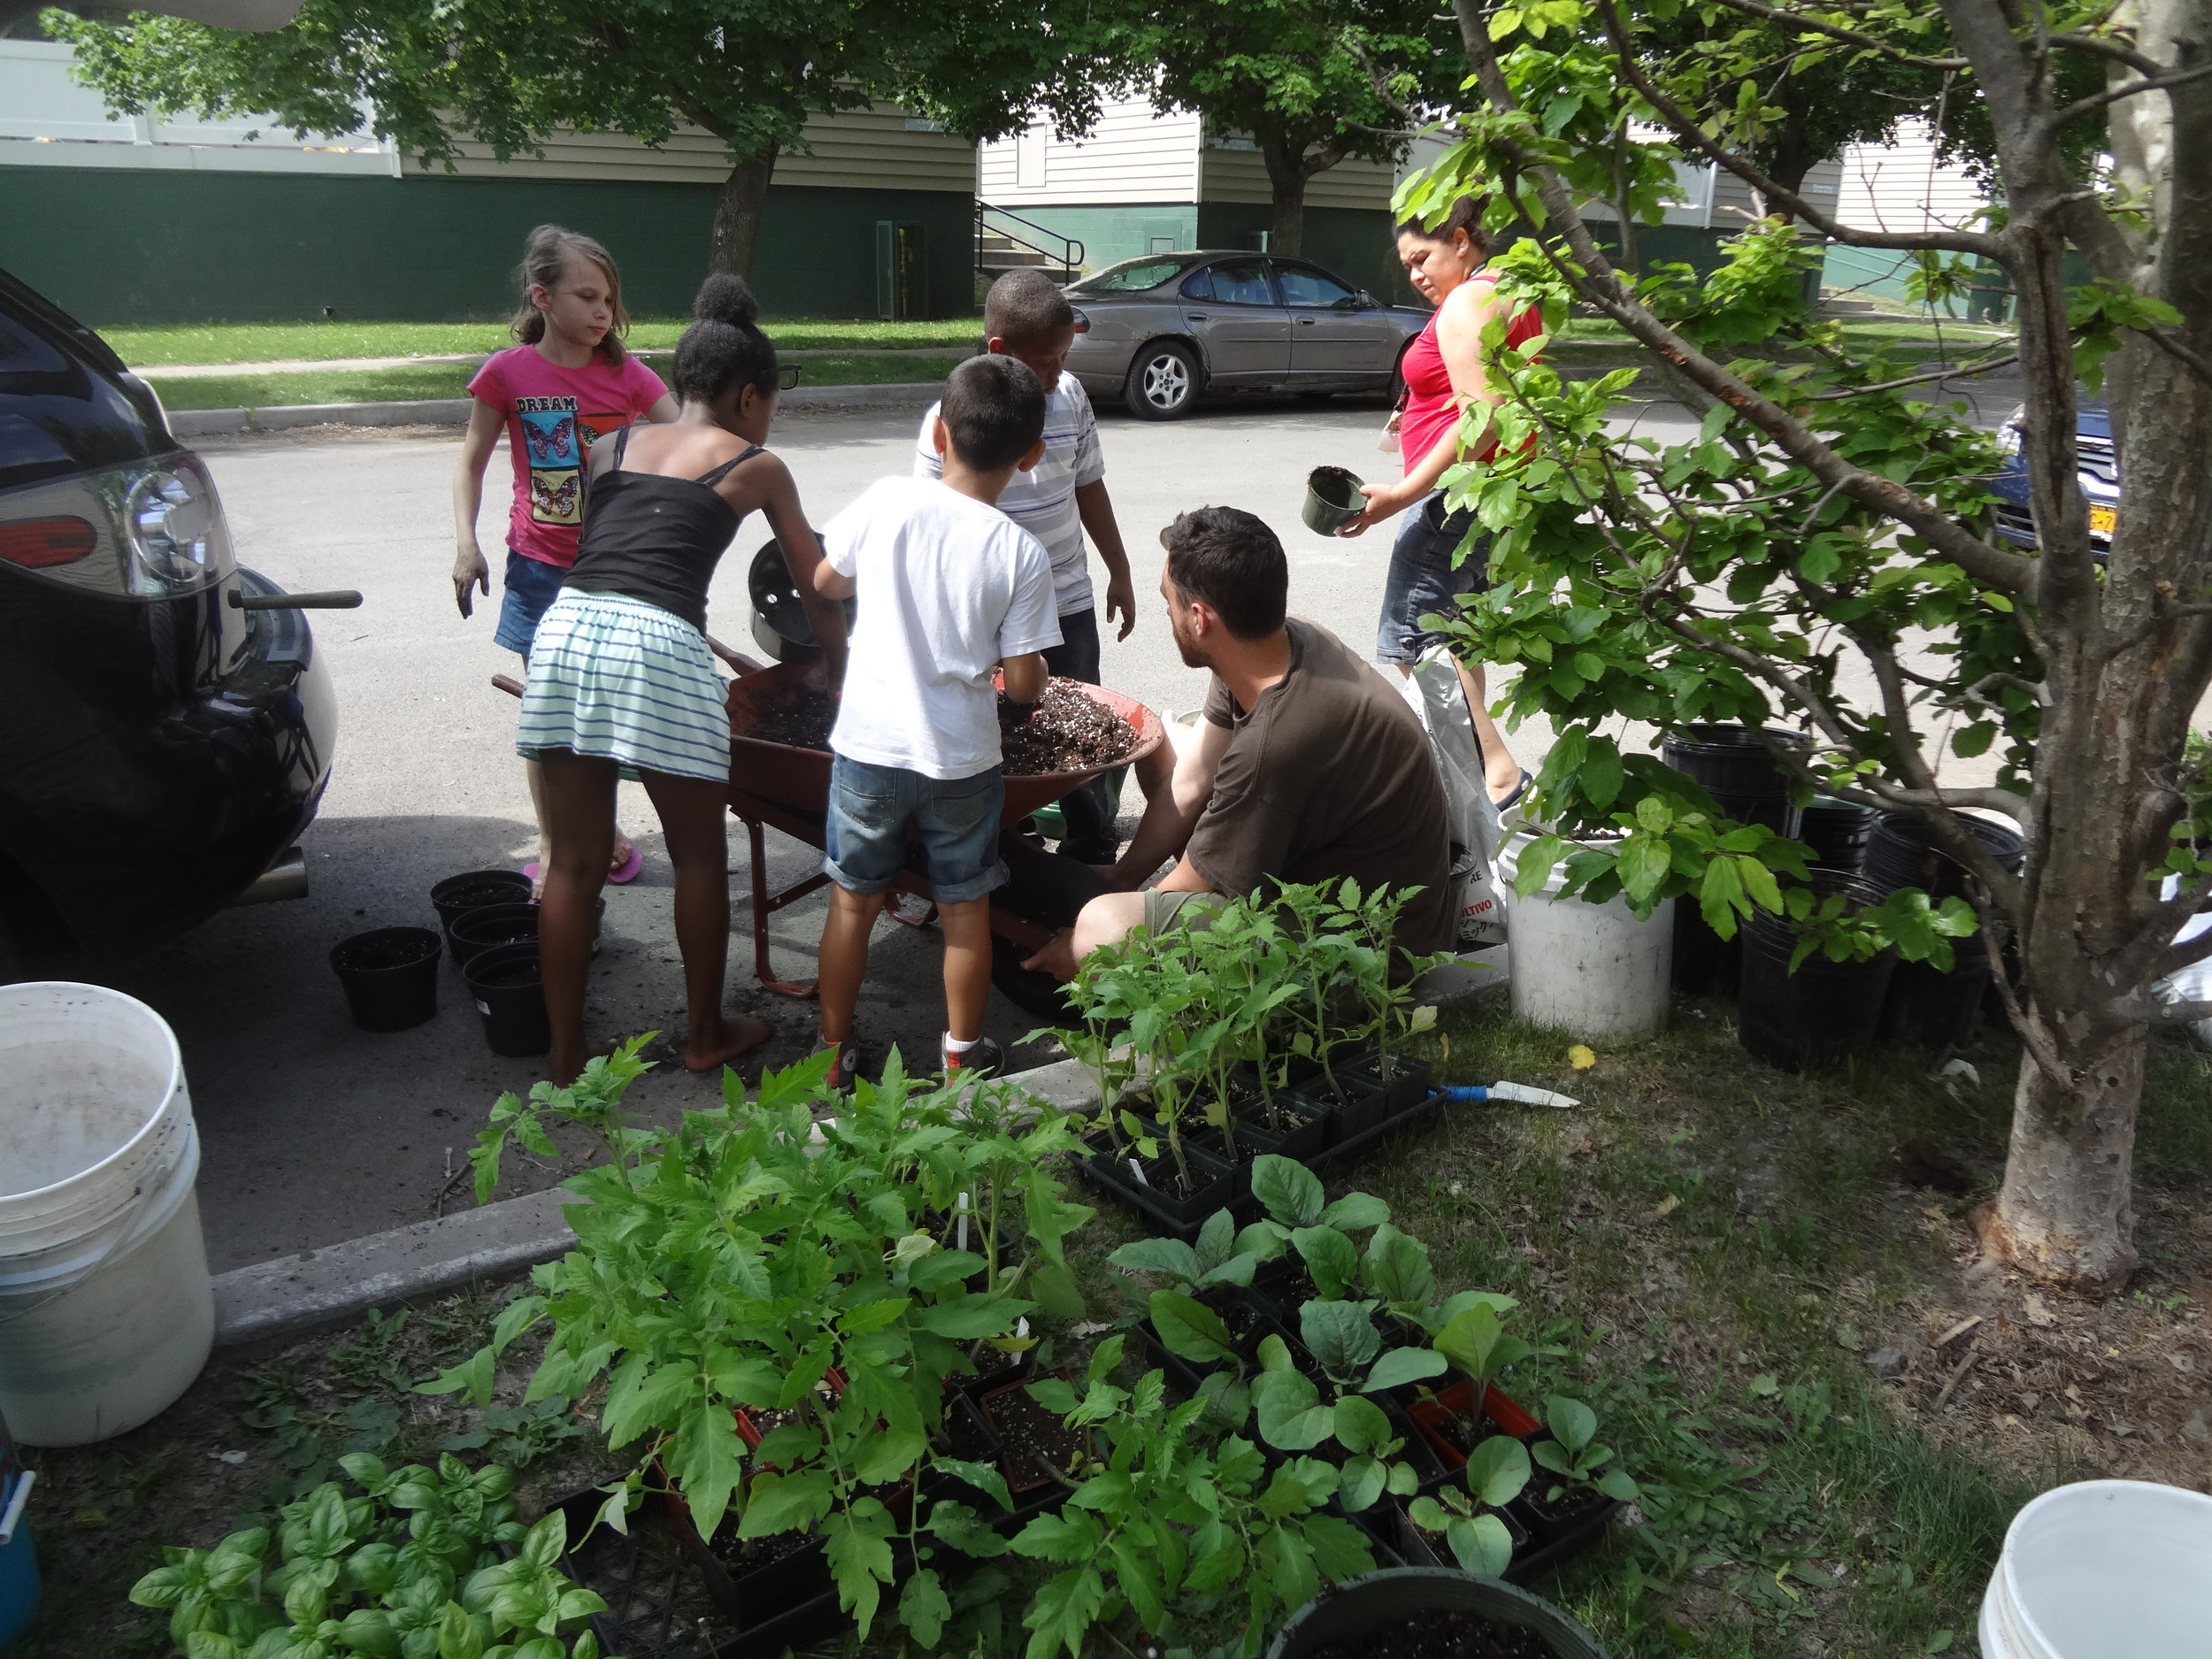 Young gardeners-in-training helping out at a community gardening event. Picture: Chrys Gardener.